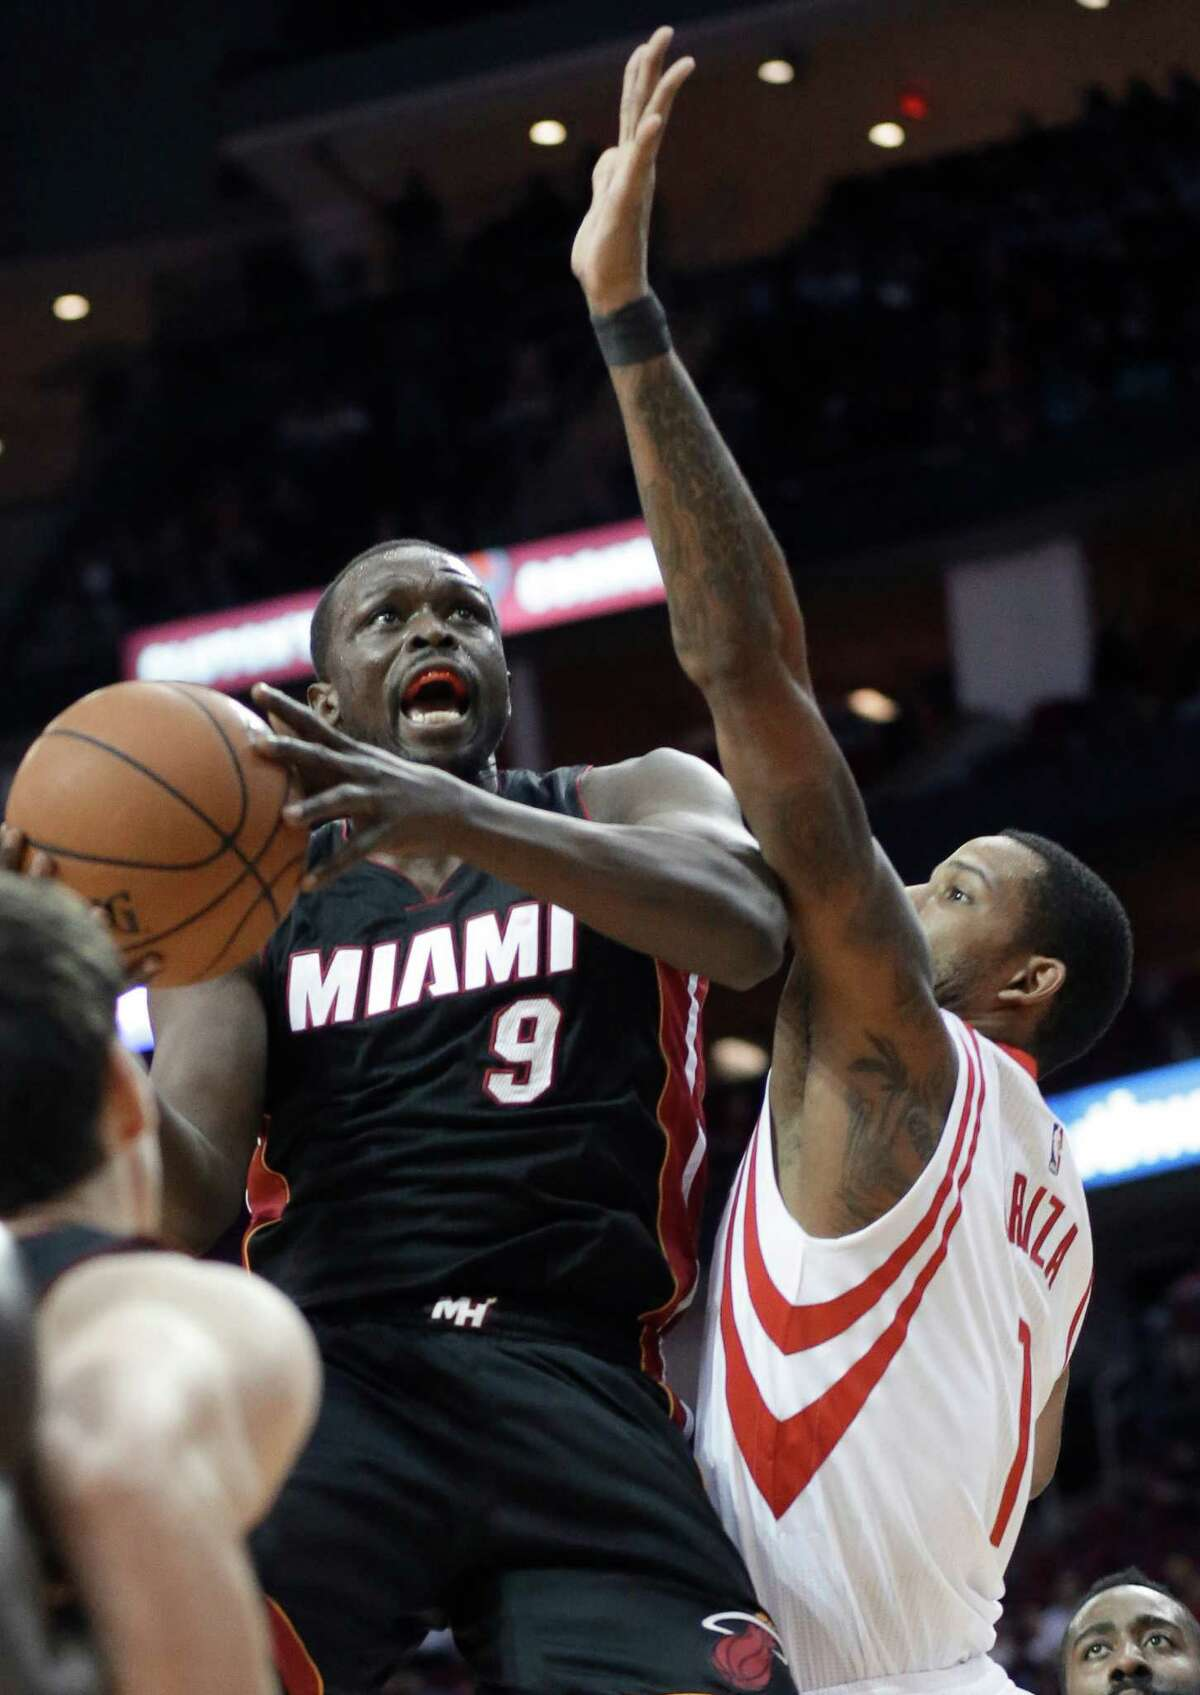 OUT THE DOOR Luol Deng, Heat. Unrestricted. Reasons he will stay: Expressed love for organization and city; will be in the East hunt. Reasons he will go: Heat would have a hard time paying him what he will command on open market from cap-flush teams looking for a hard-nosed defender and veteran leader.